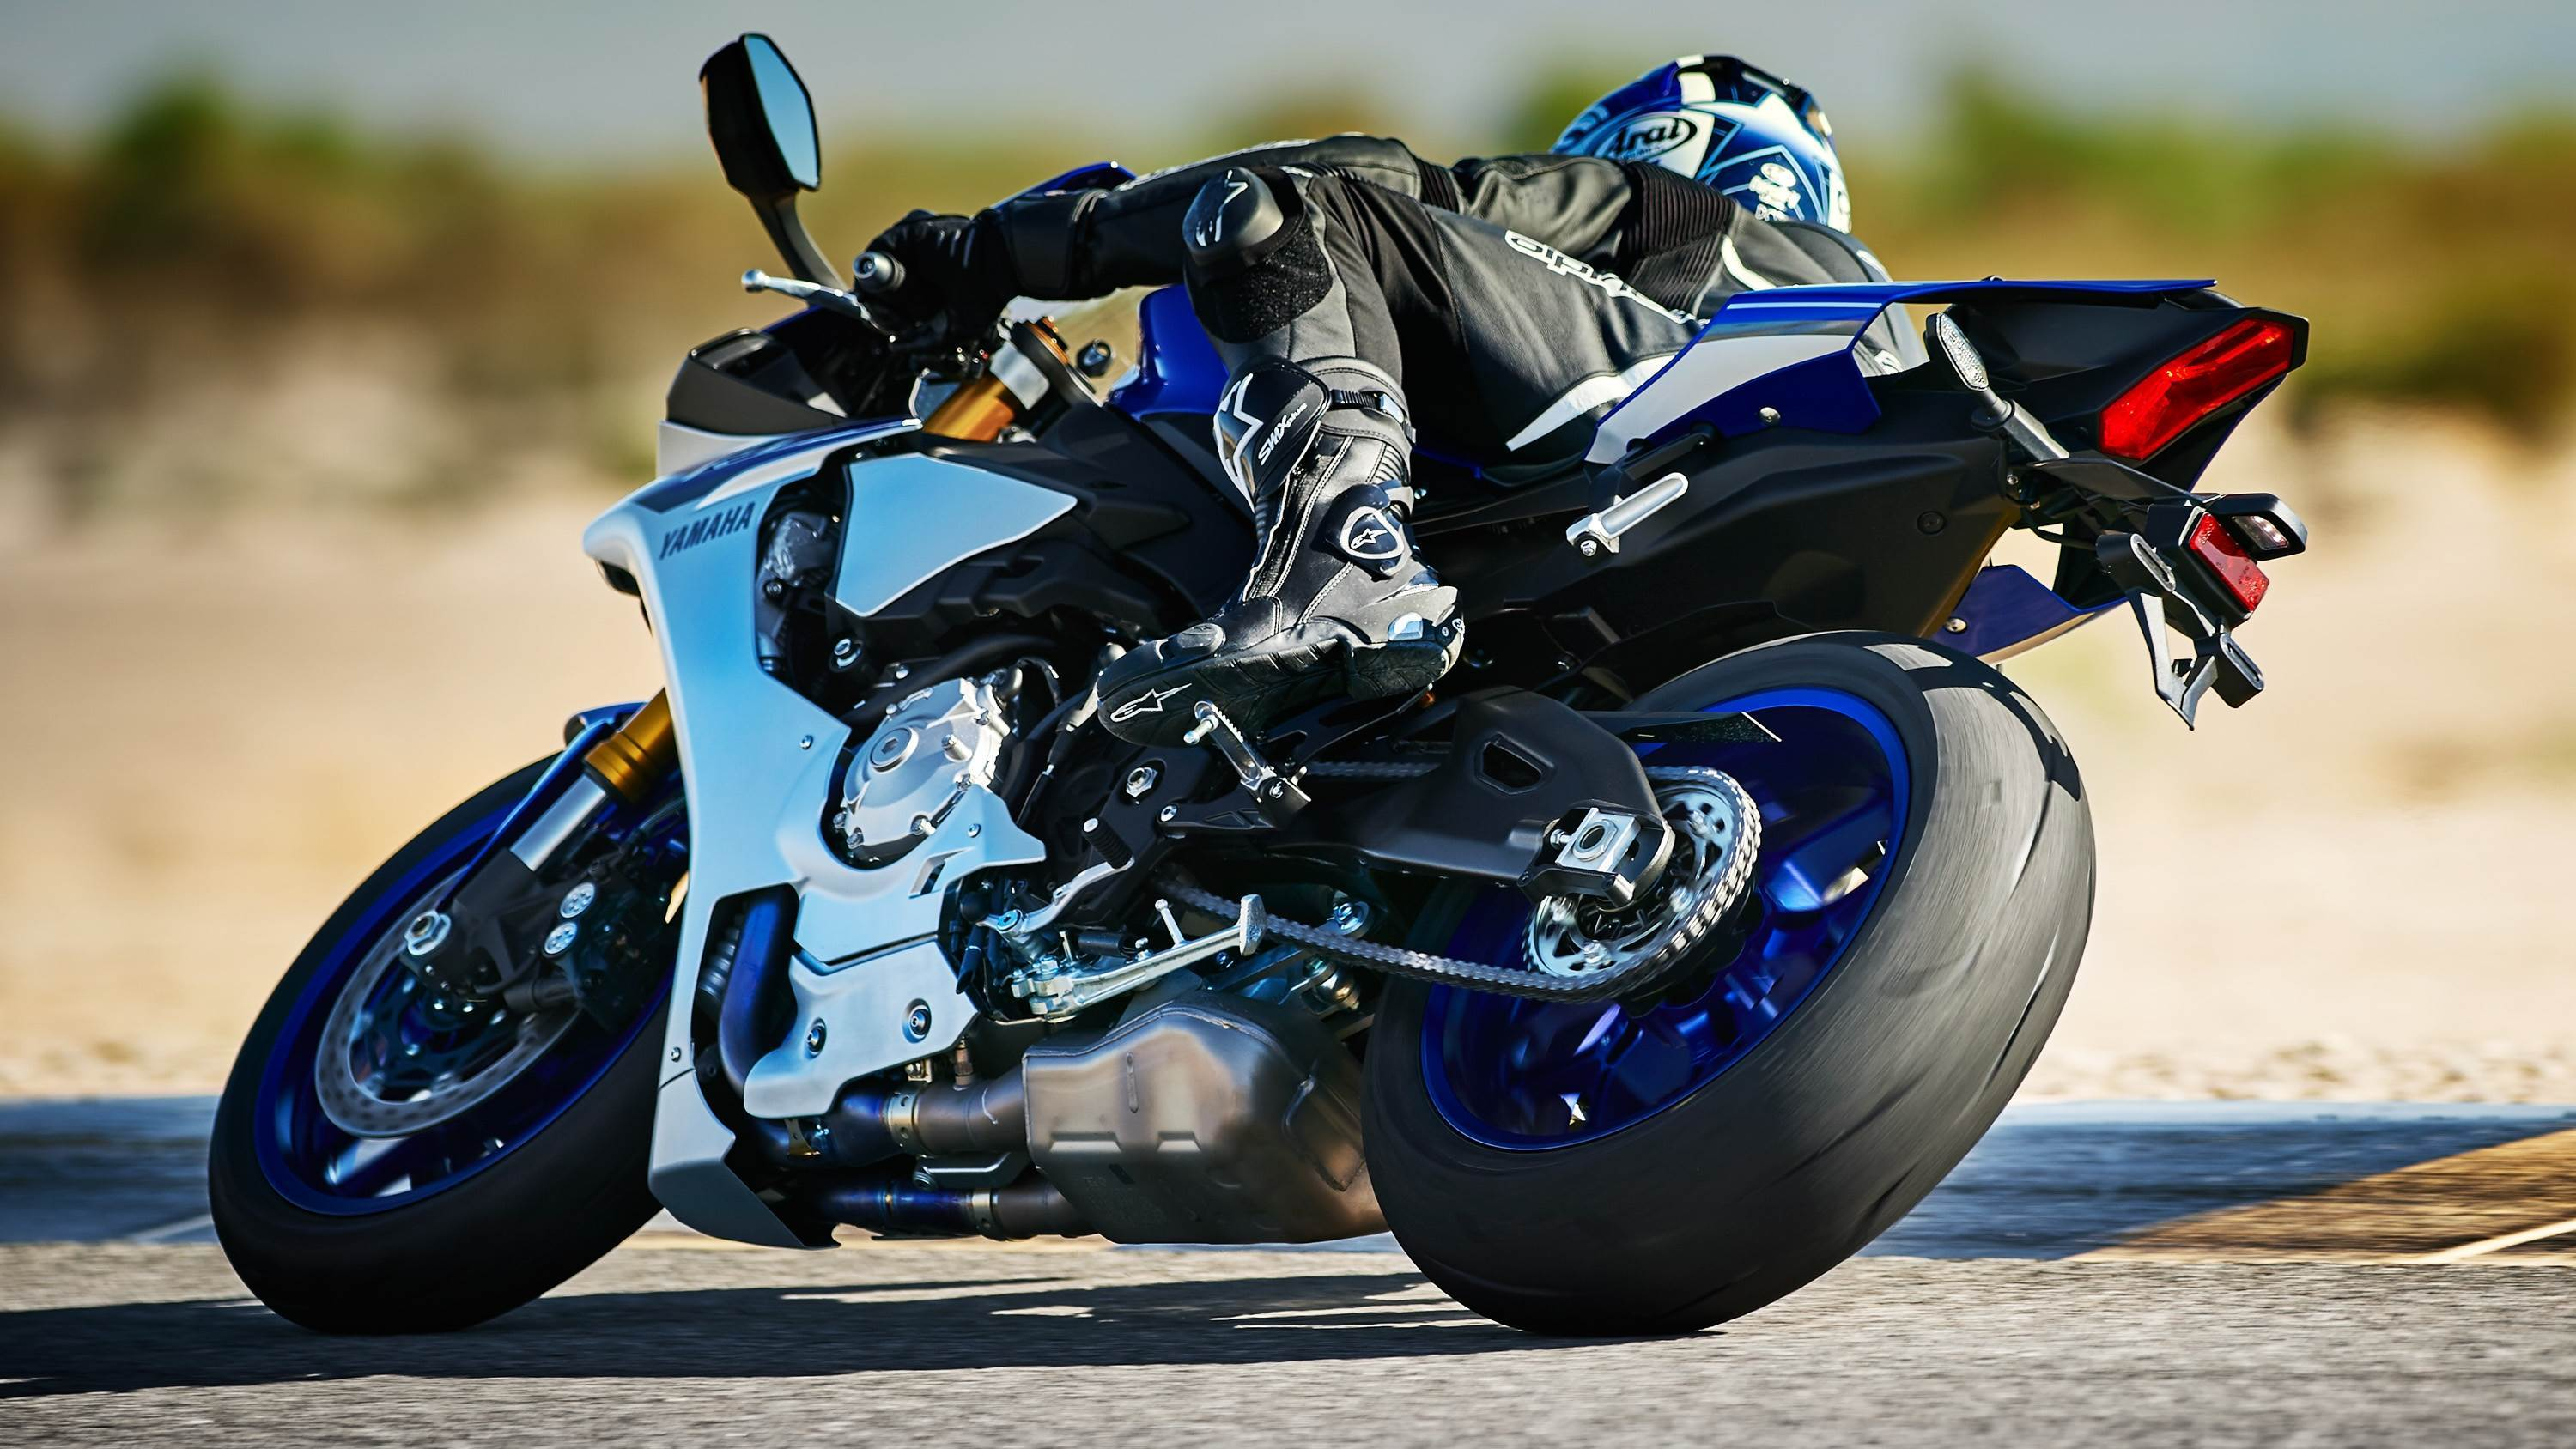 2015 yamaha r1 / r1 m hd wallpapers